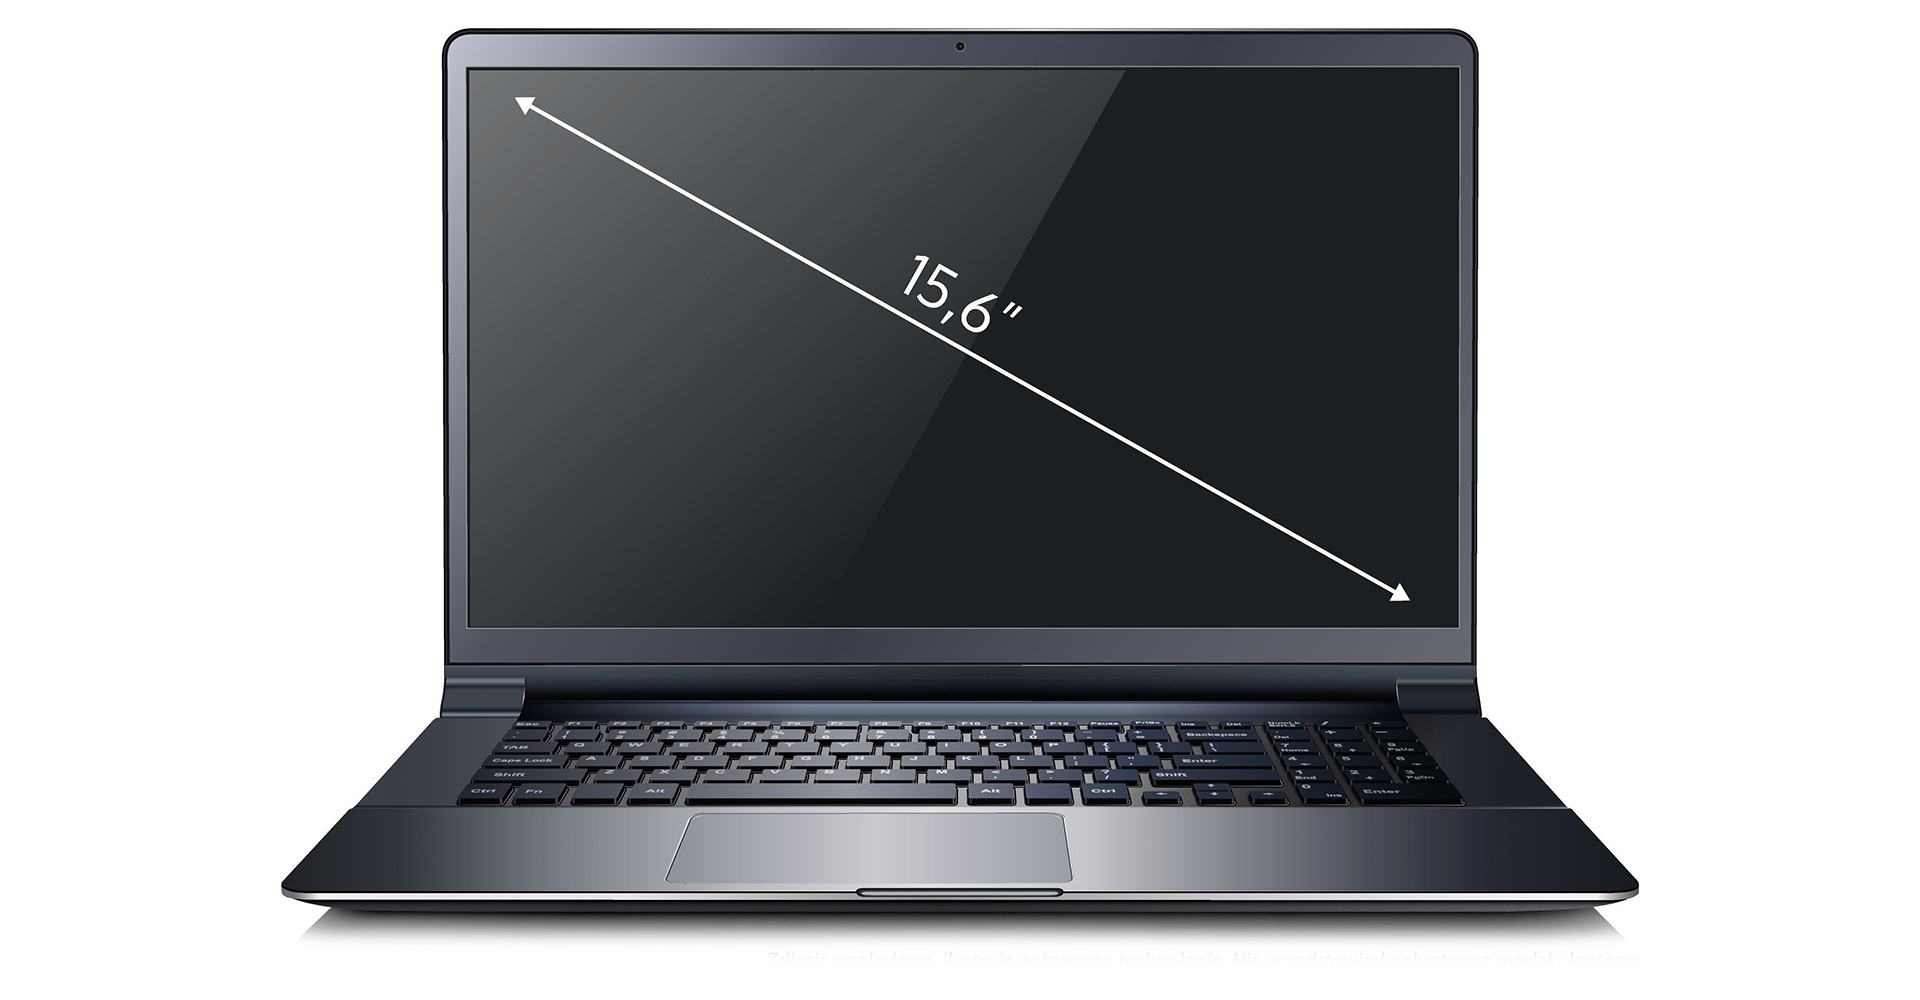 Dell Inspiron 15 3582 N4000 4GB 500GB Win10H                             15.6 collas pa diagonāli